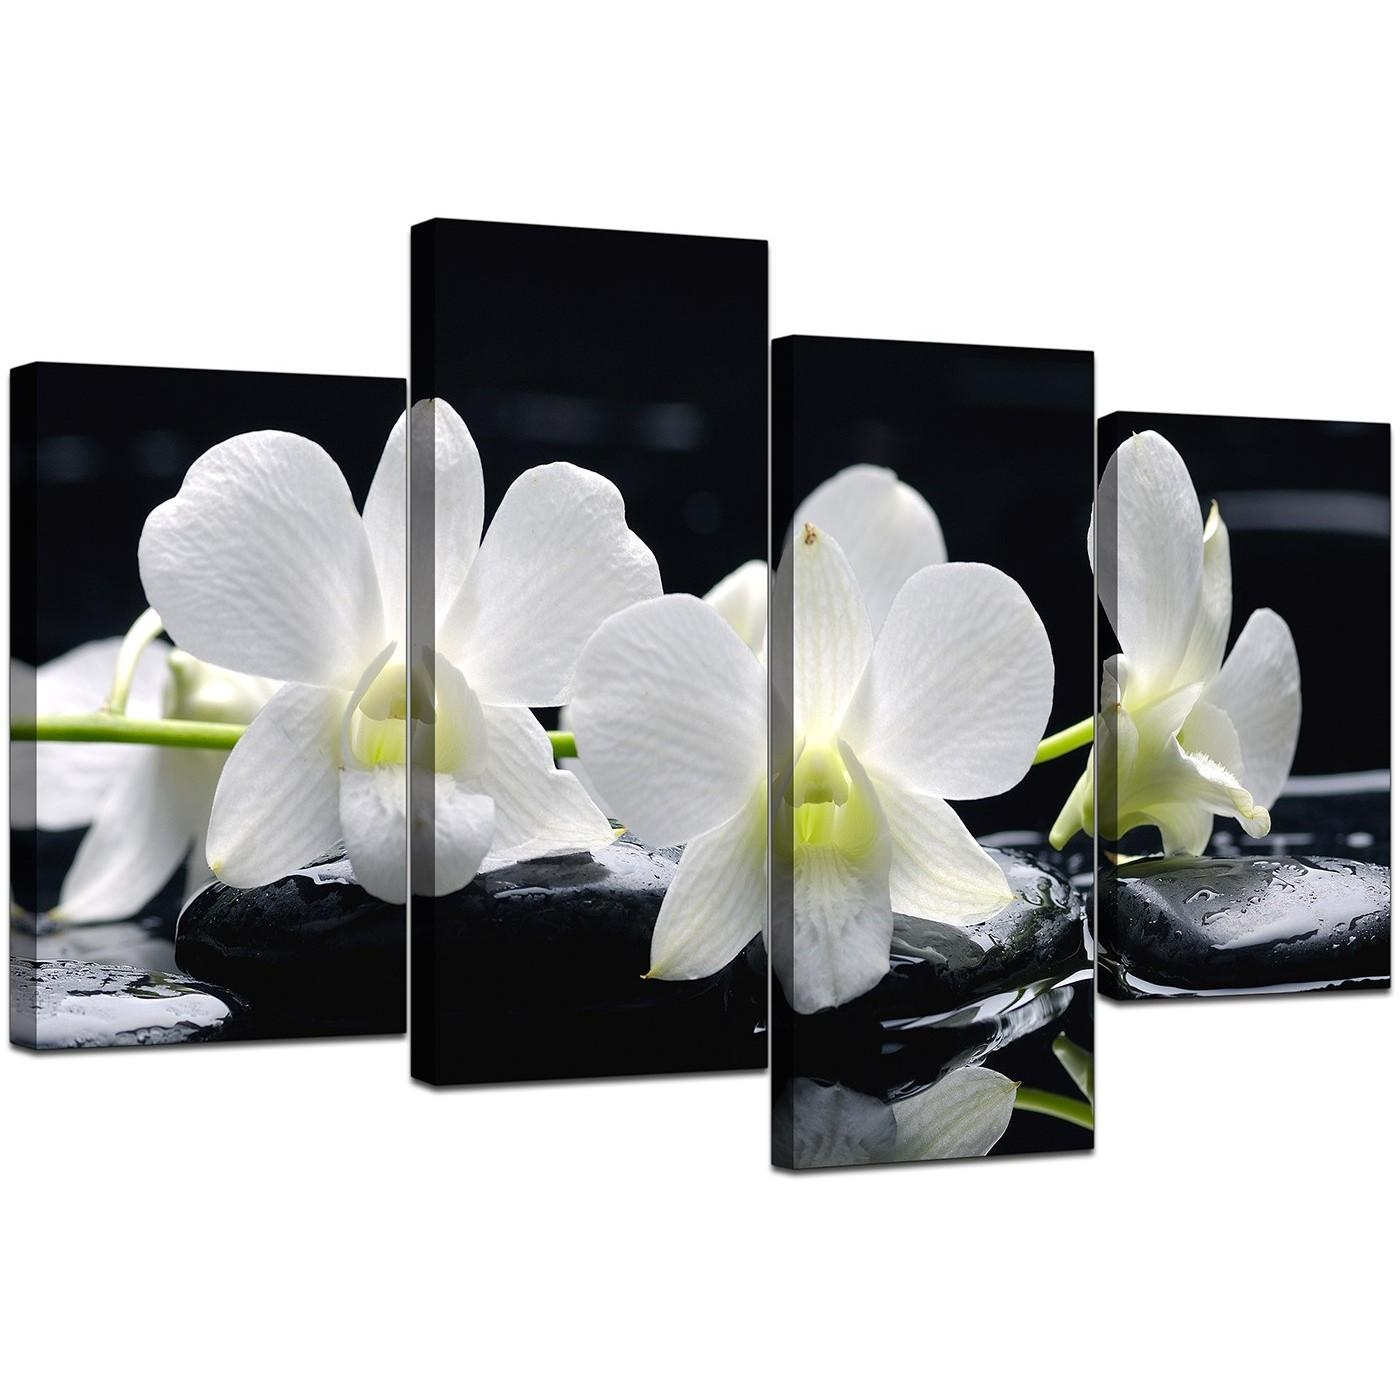 Canvas Wall Art Of Orchids In Black & White For Your Living Room With Large Black And White Wall Art (Image 8 of 20)